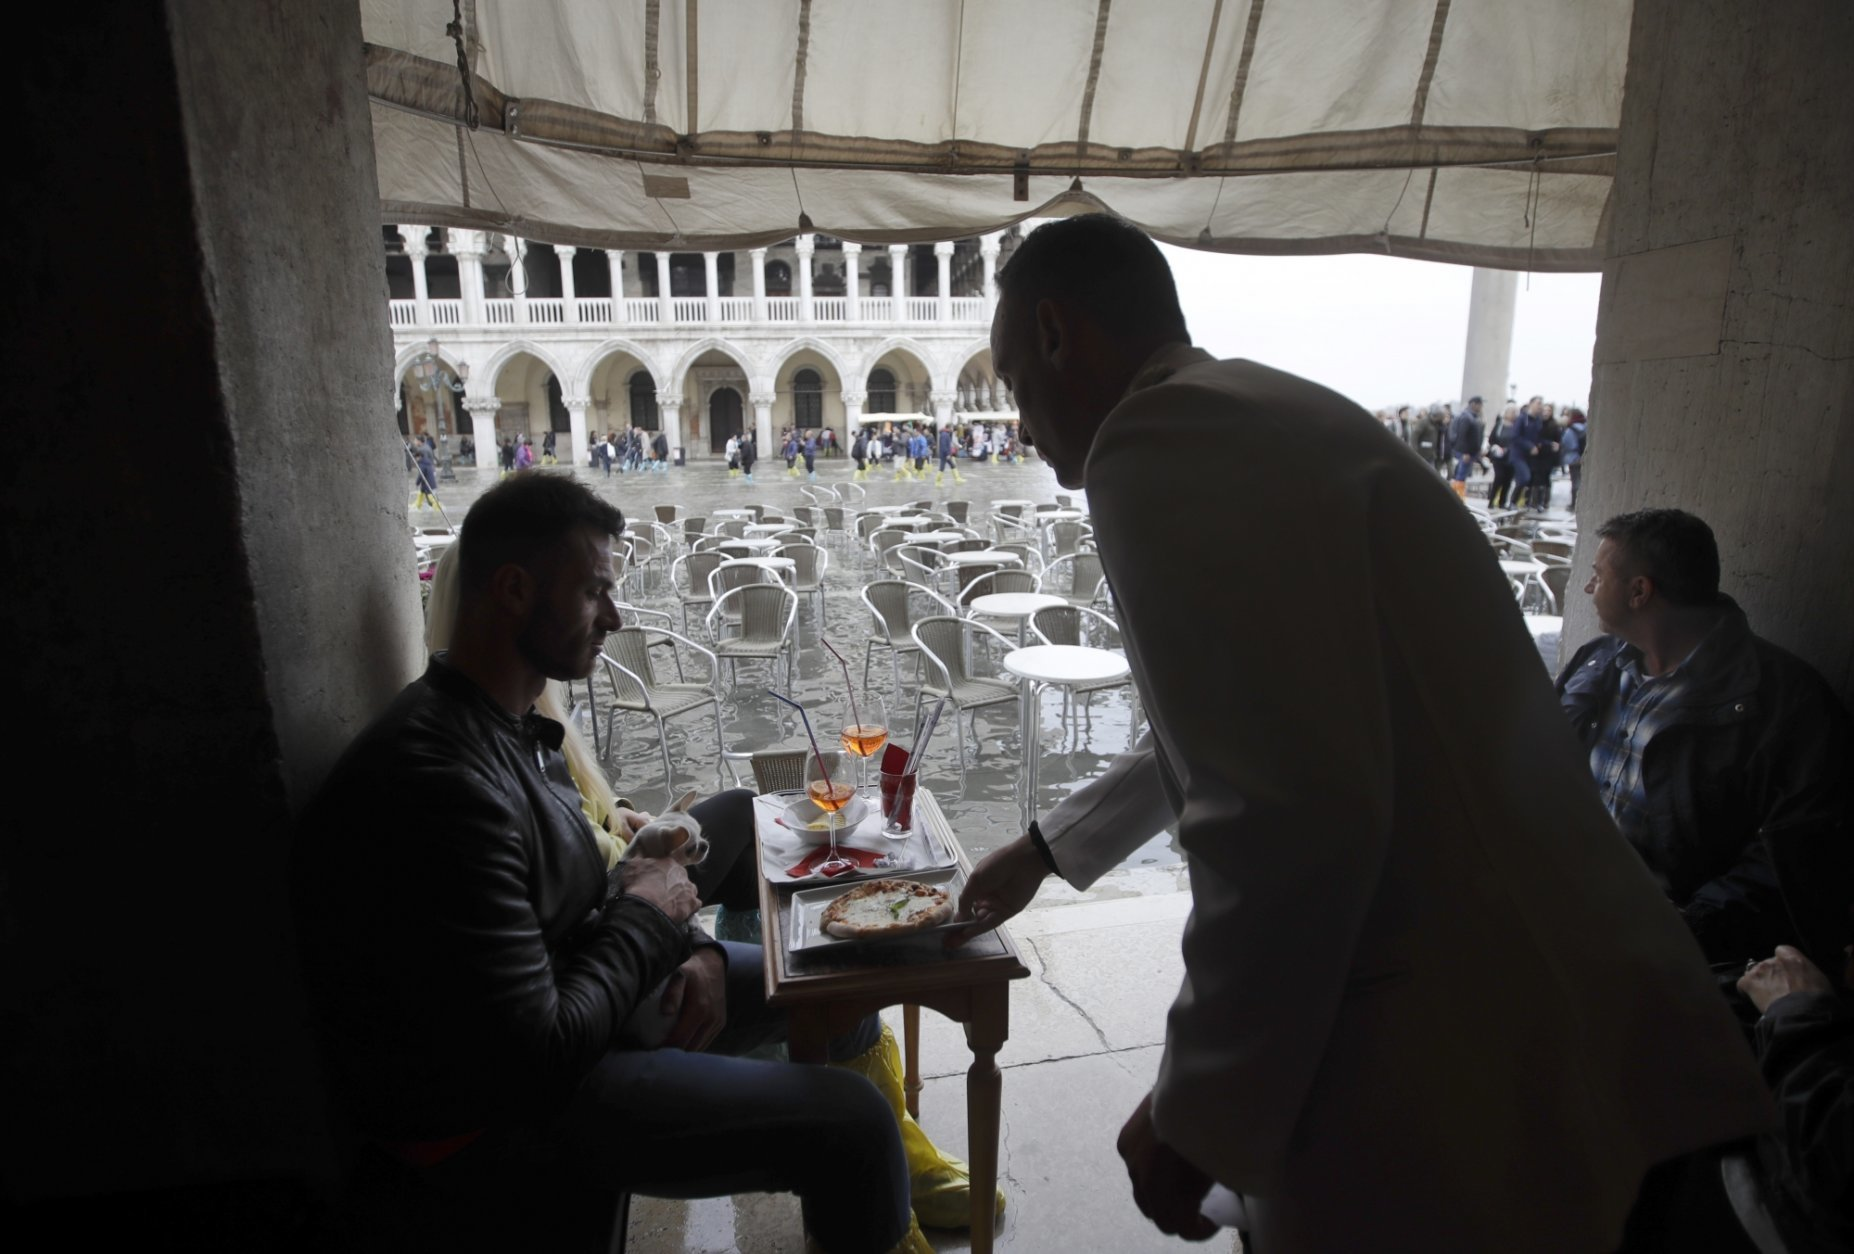 A client is served pizza in a cafe' in flooded St. Mark's Square in Venice, Italy, Thursday, Nov. 1, 2018 as rainstorms and strong winds have been battering the country. Two people were killed when a falling tree crushed their car in the mountainous countryside in northwestern Italy, as rainstorms and strong winds continued to pummel much of the country. (AP Photo/Luca Bruno)